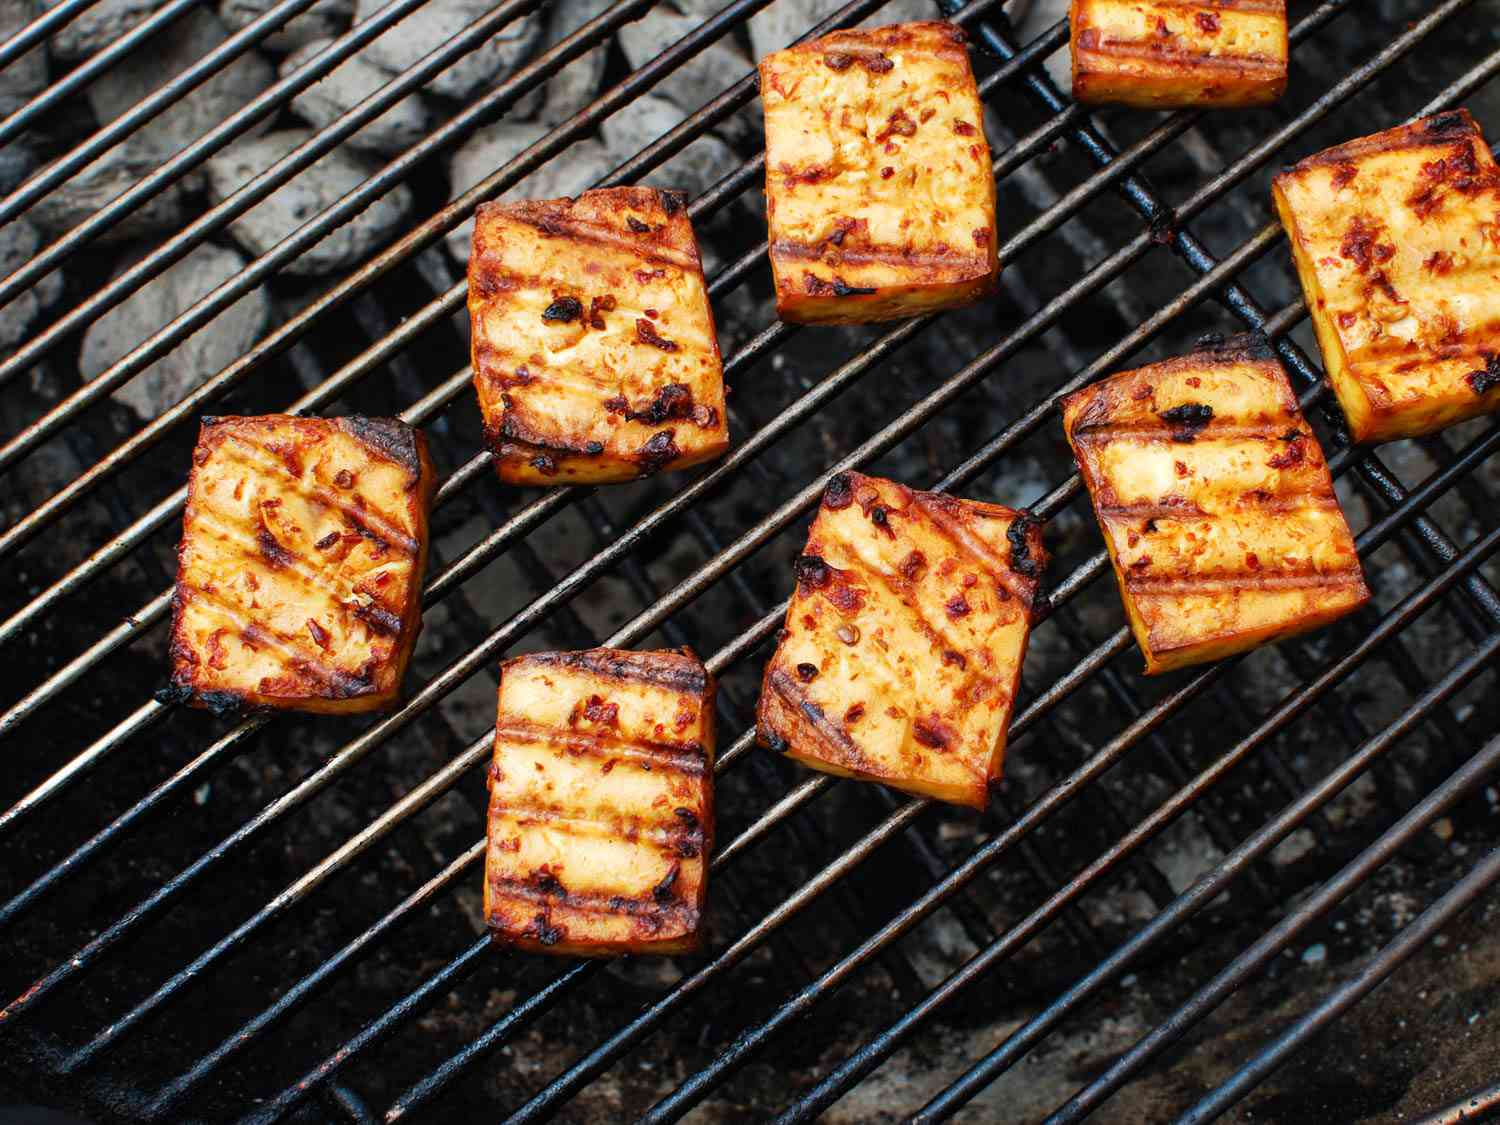 06182015-grilled-tofu-chipotle-miso-sauce-shaozhizhong-11.jpg